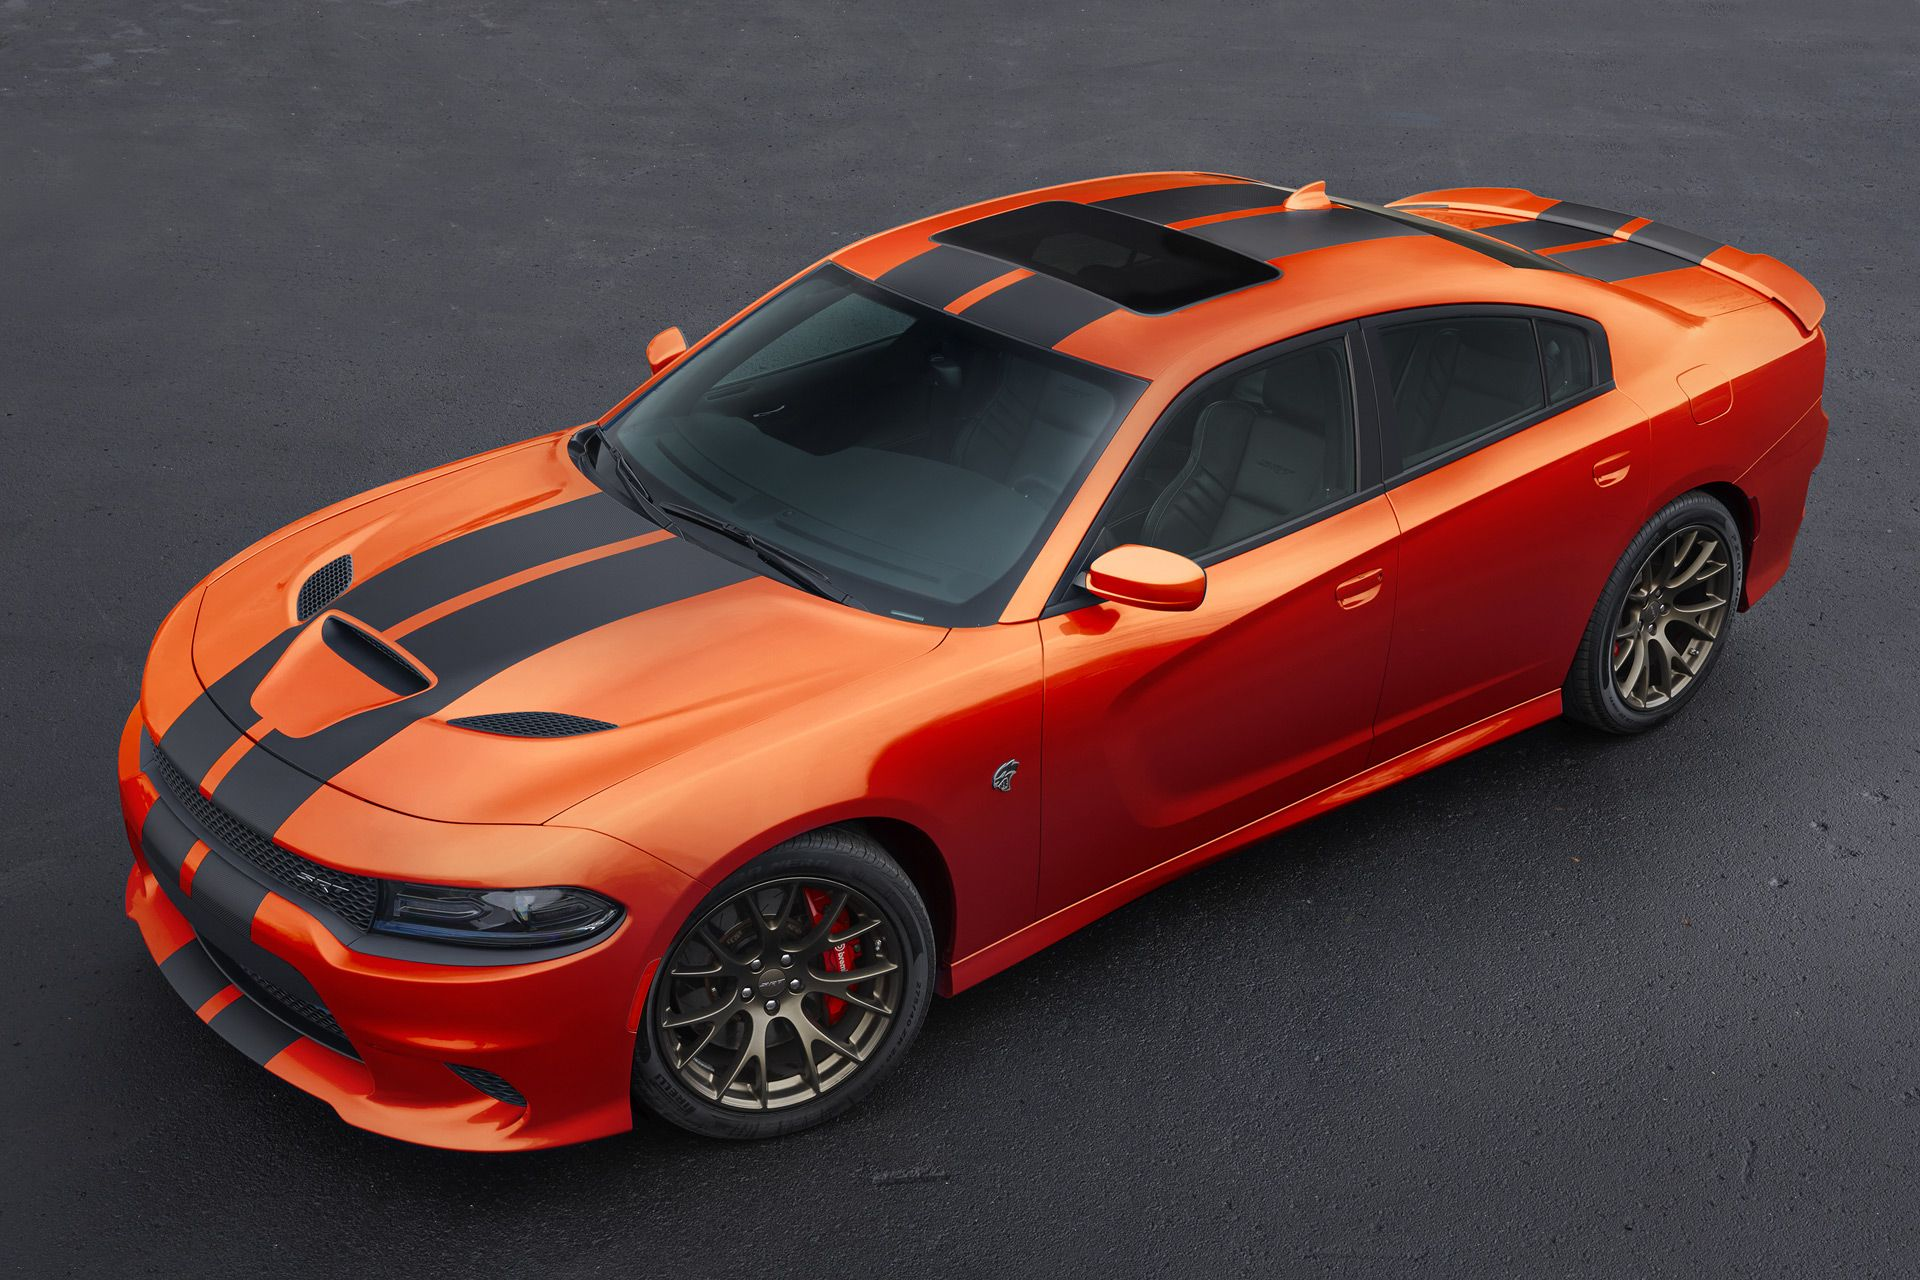 Get the latest reviews of the 2016 dodge charger find prices buying advice pictures expert ratings safety features specs and price quotes